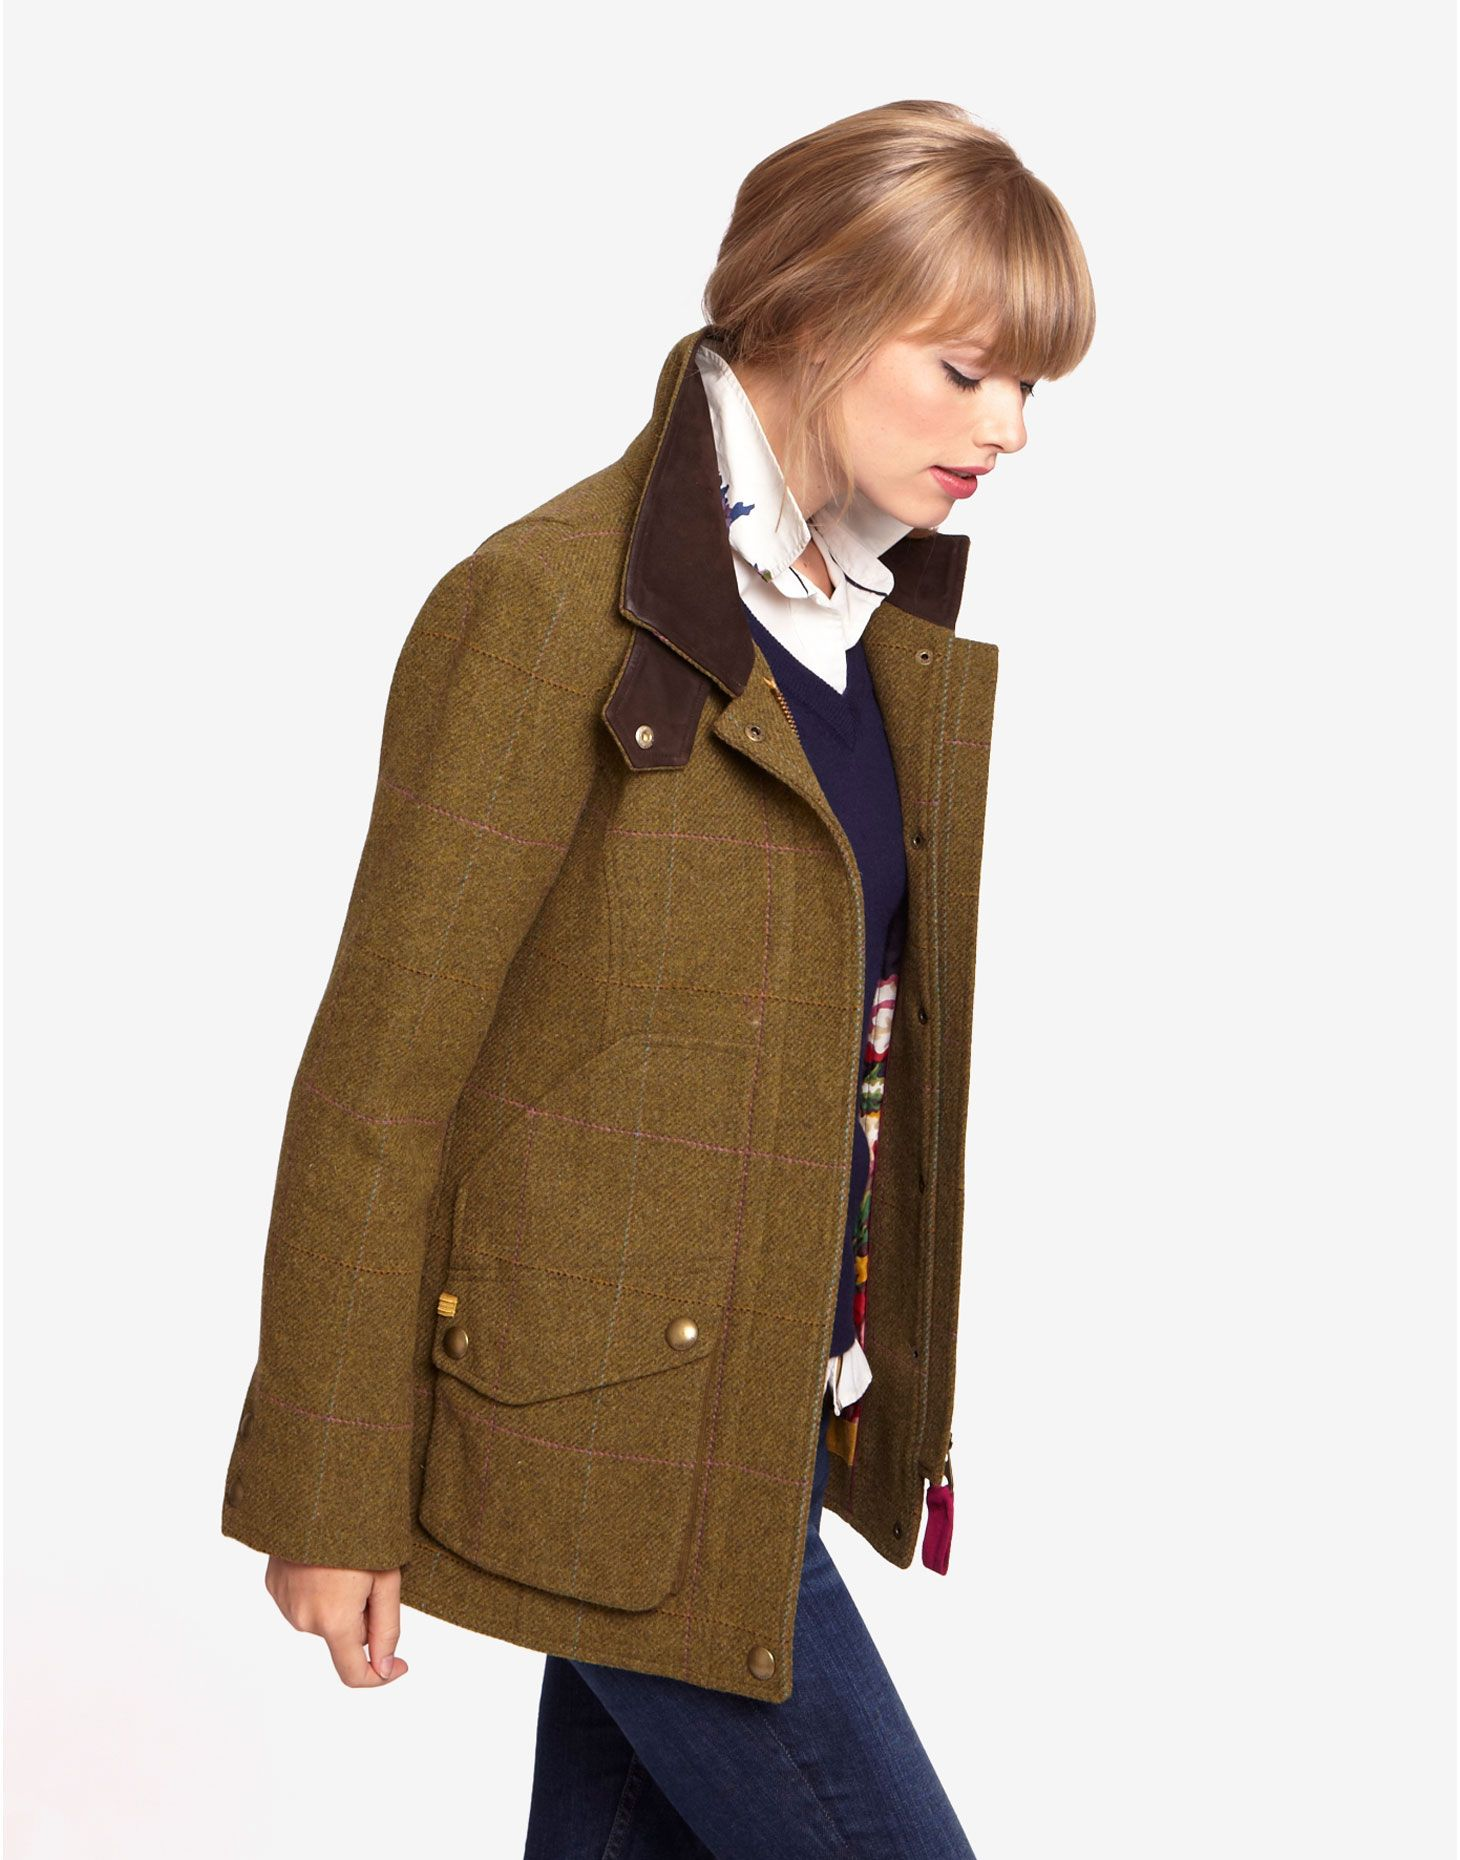 FIELDCOAT Womens Semi Fitted Tweed Coat, Suede Collar